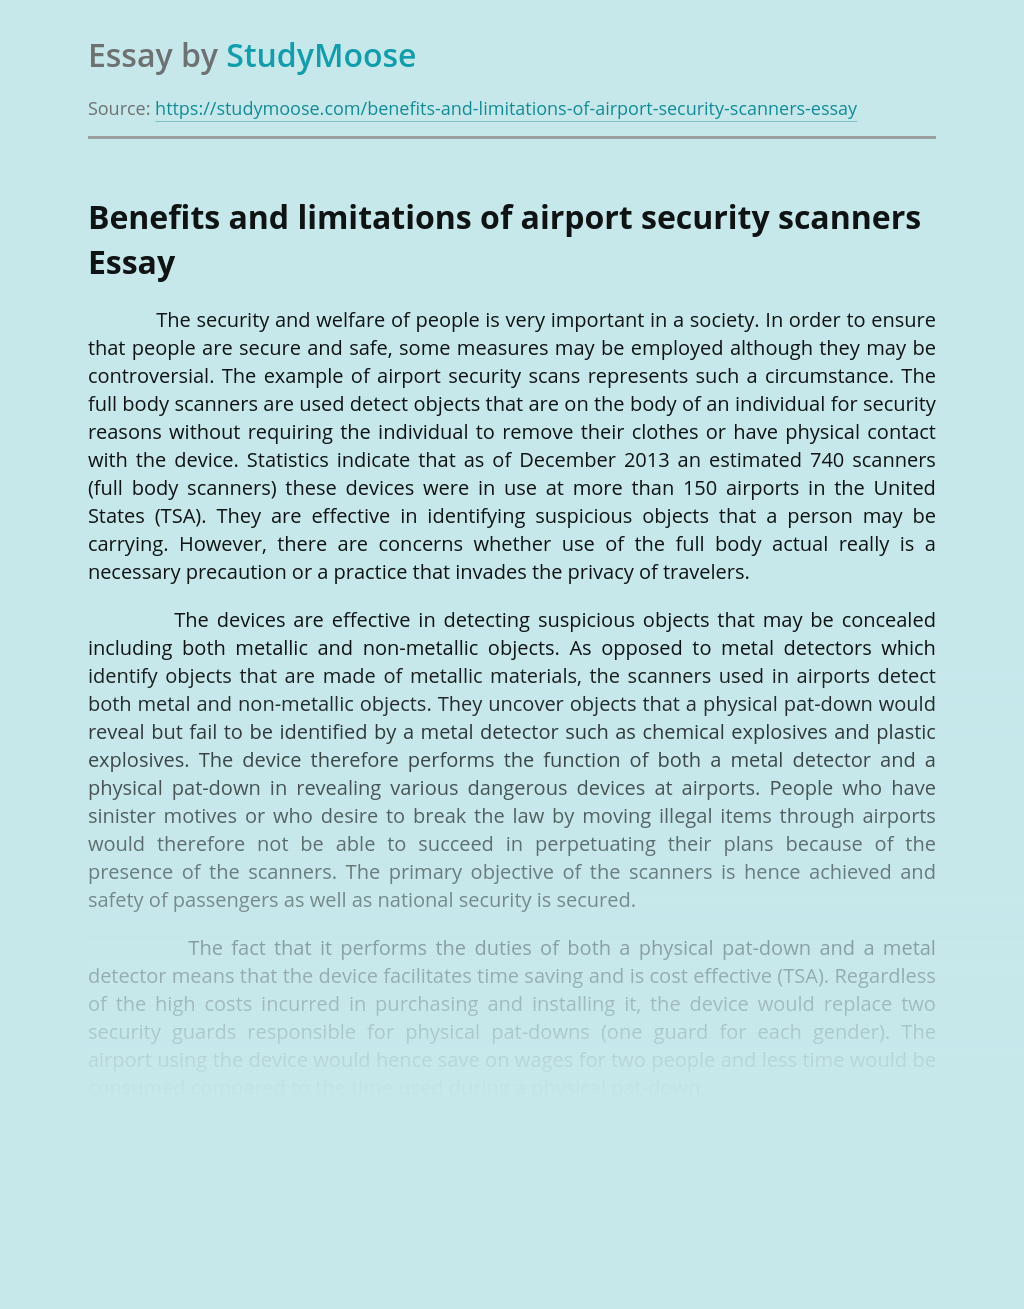 Benefits and limitations of airport security scanners